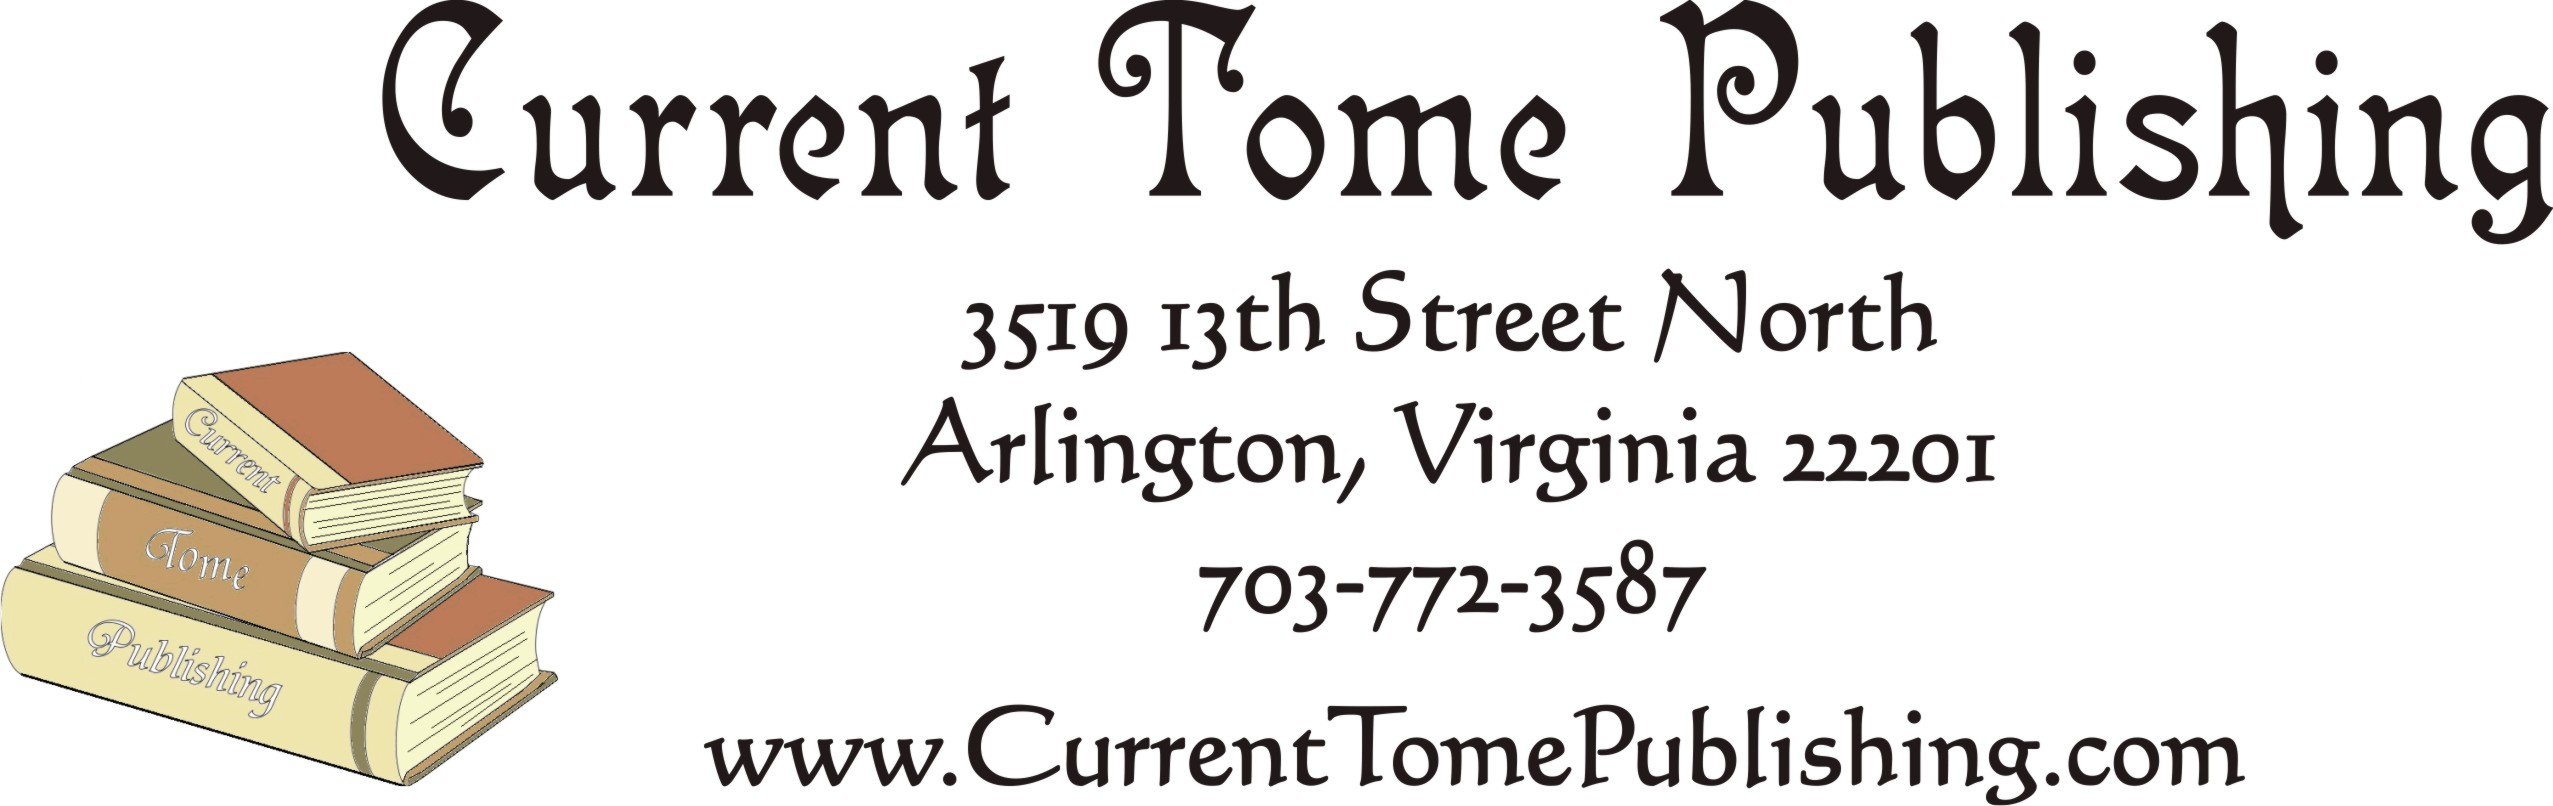 current-tome-publishing-logo